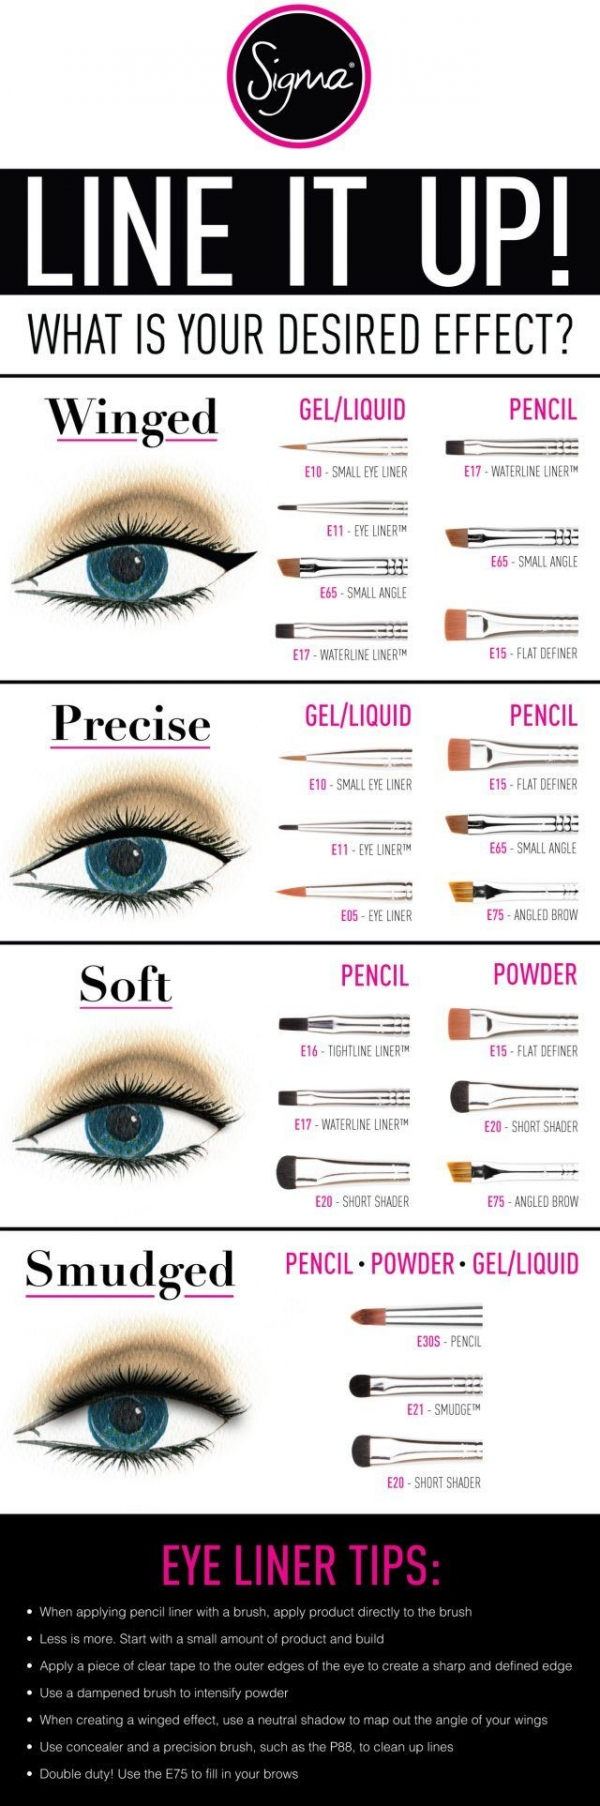 How to Get the Perfect Eyeliner Effect: the Applicators You Need